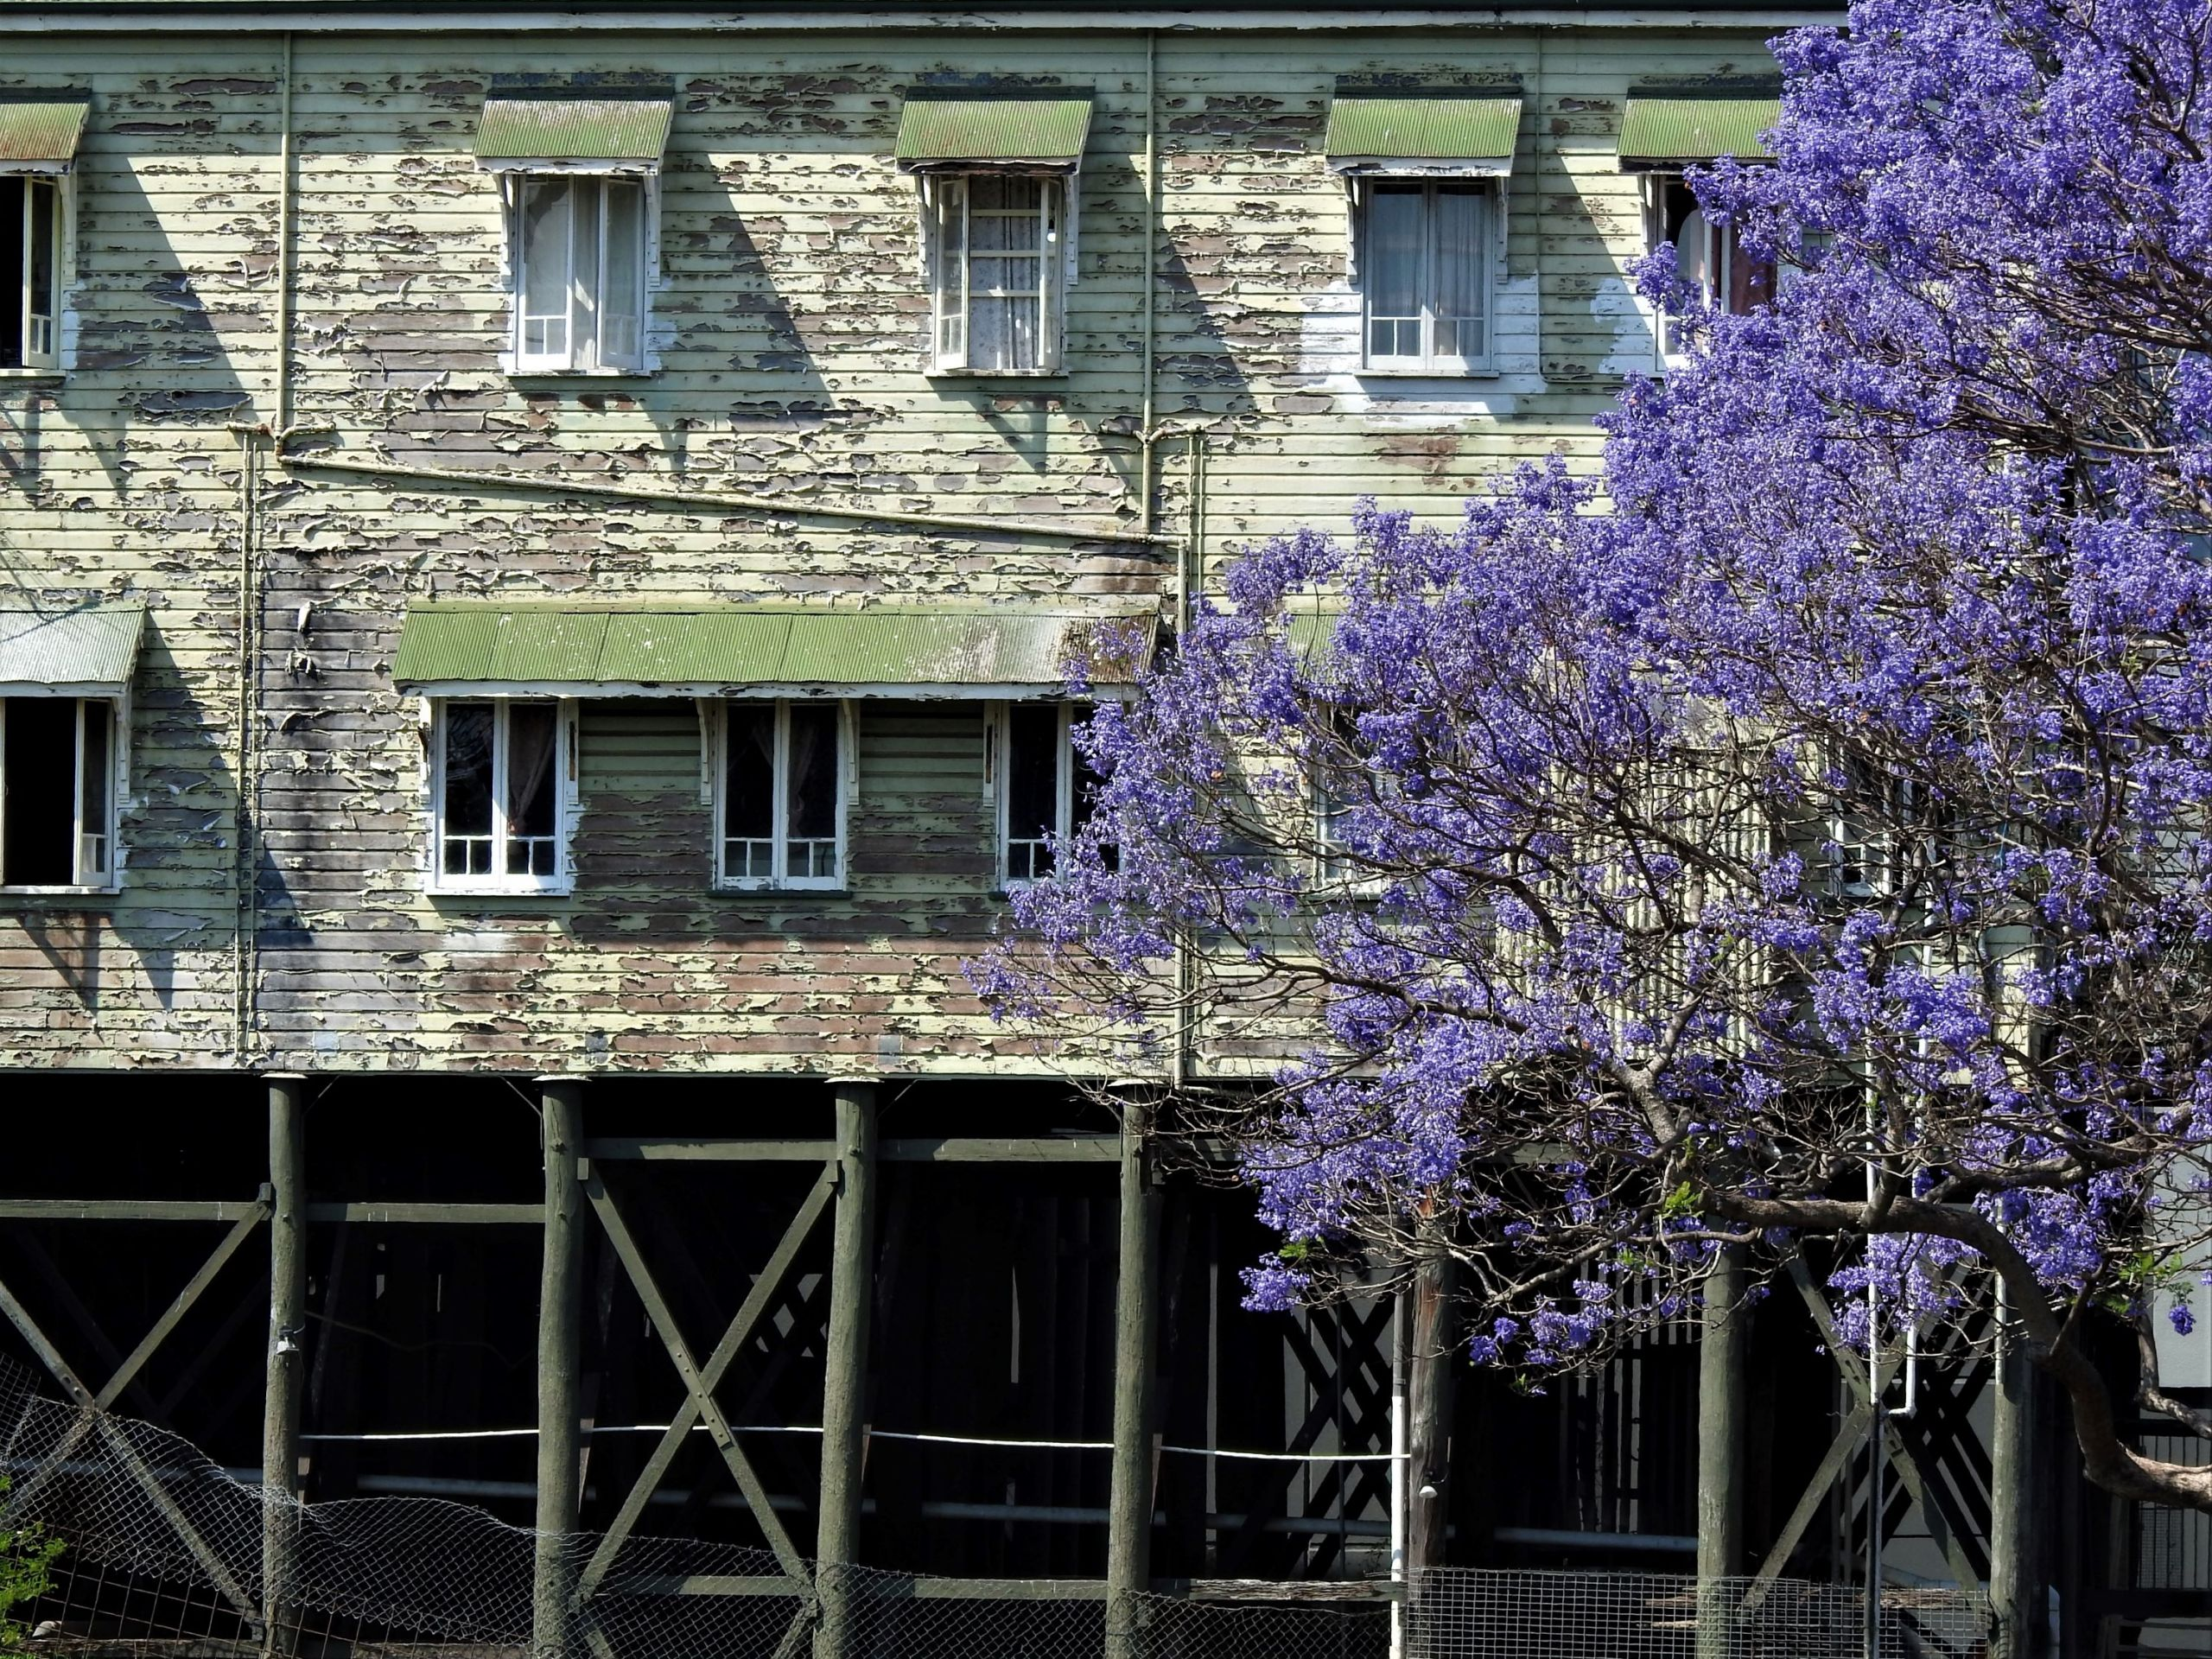 House with peeling paint as a backdrop to a blooming jacaranda tree